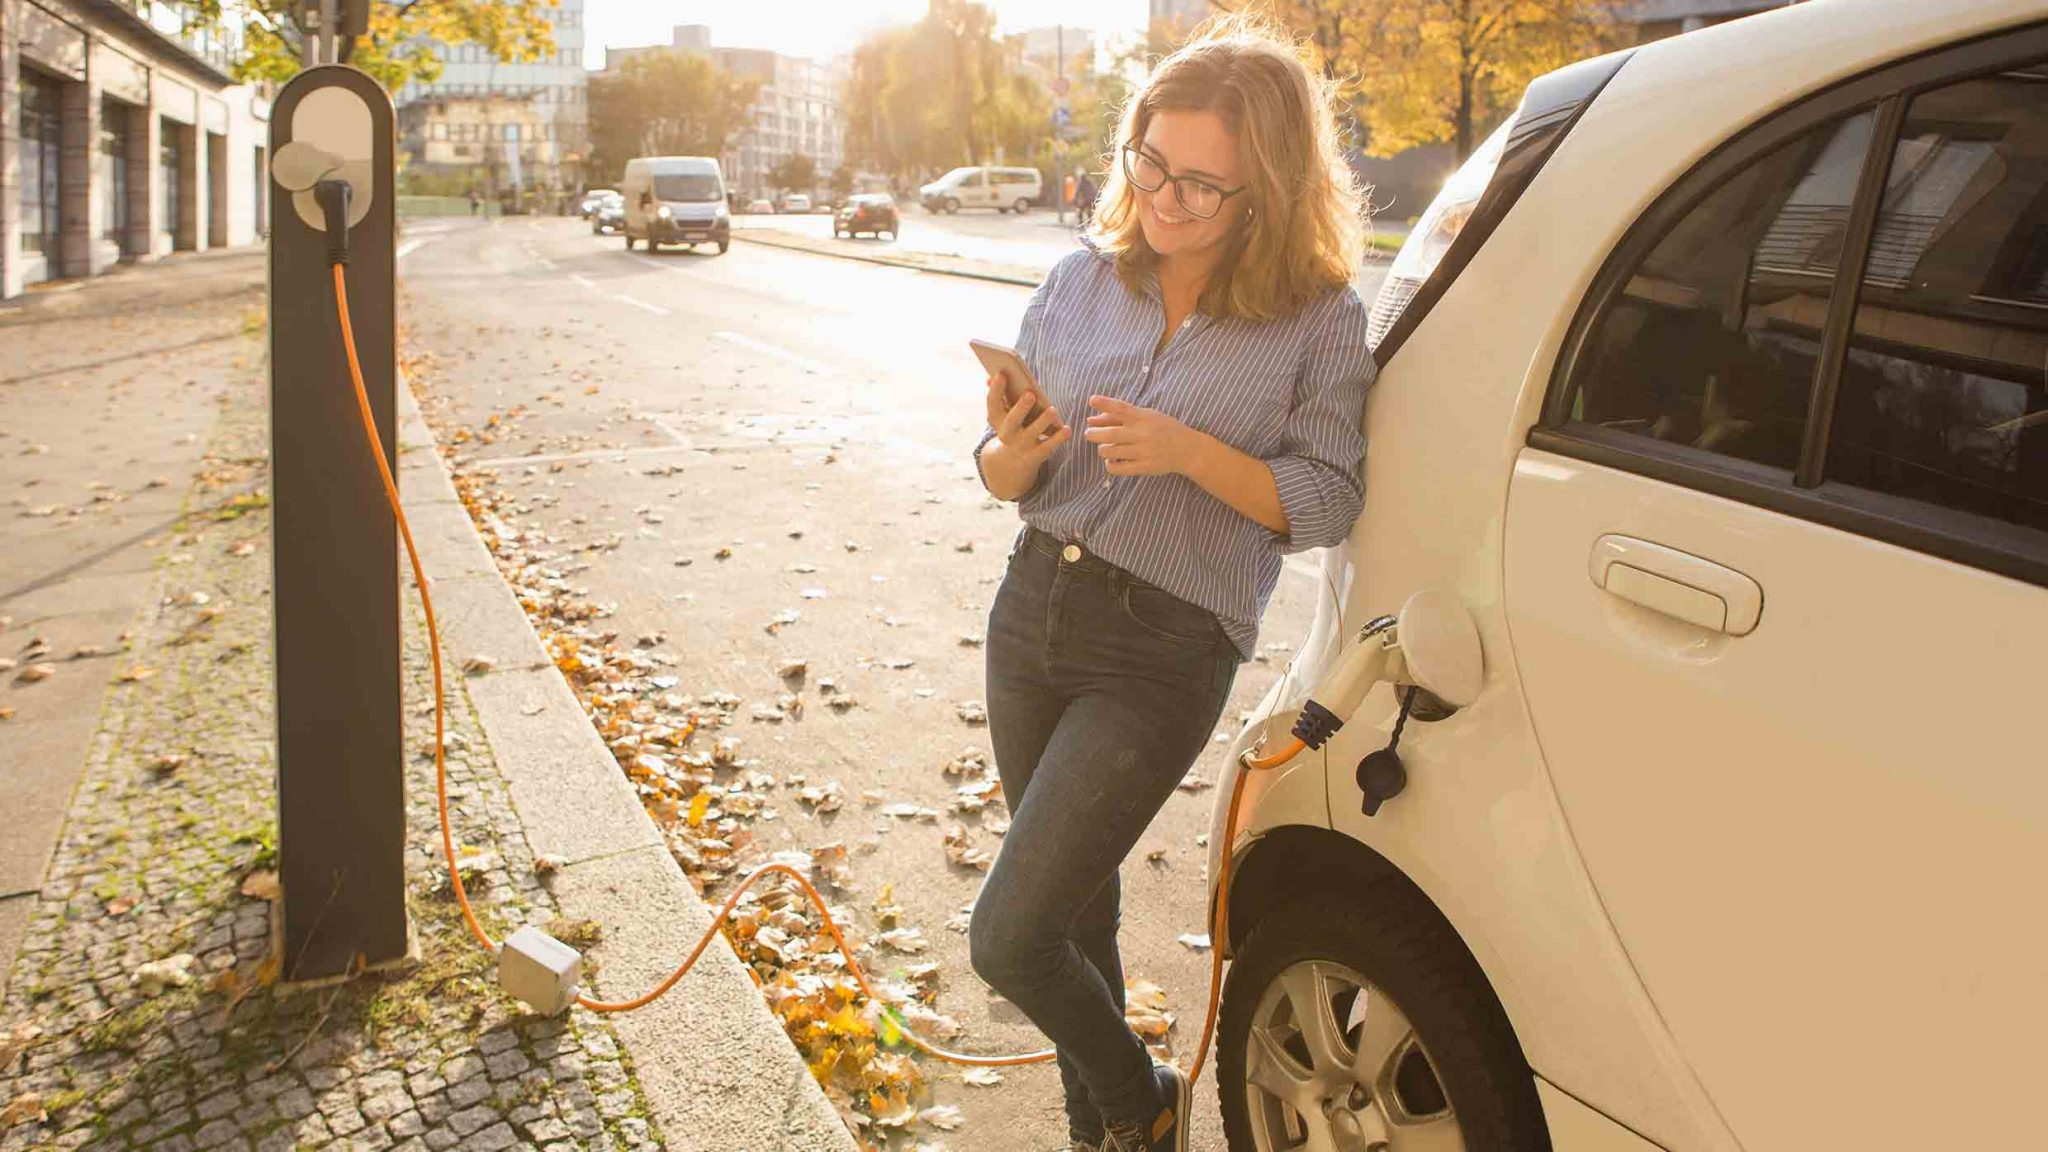 Person leaning against electric car looking at phone as the EV charges.economic and environmental benefits of an EV